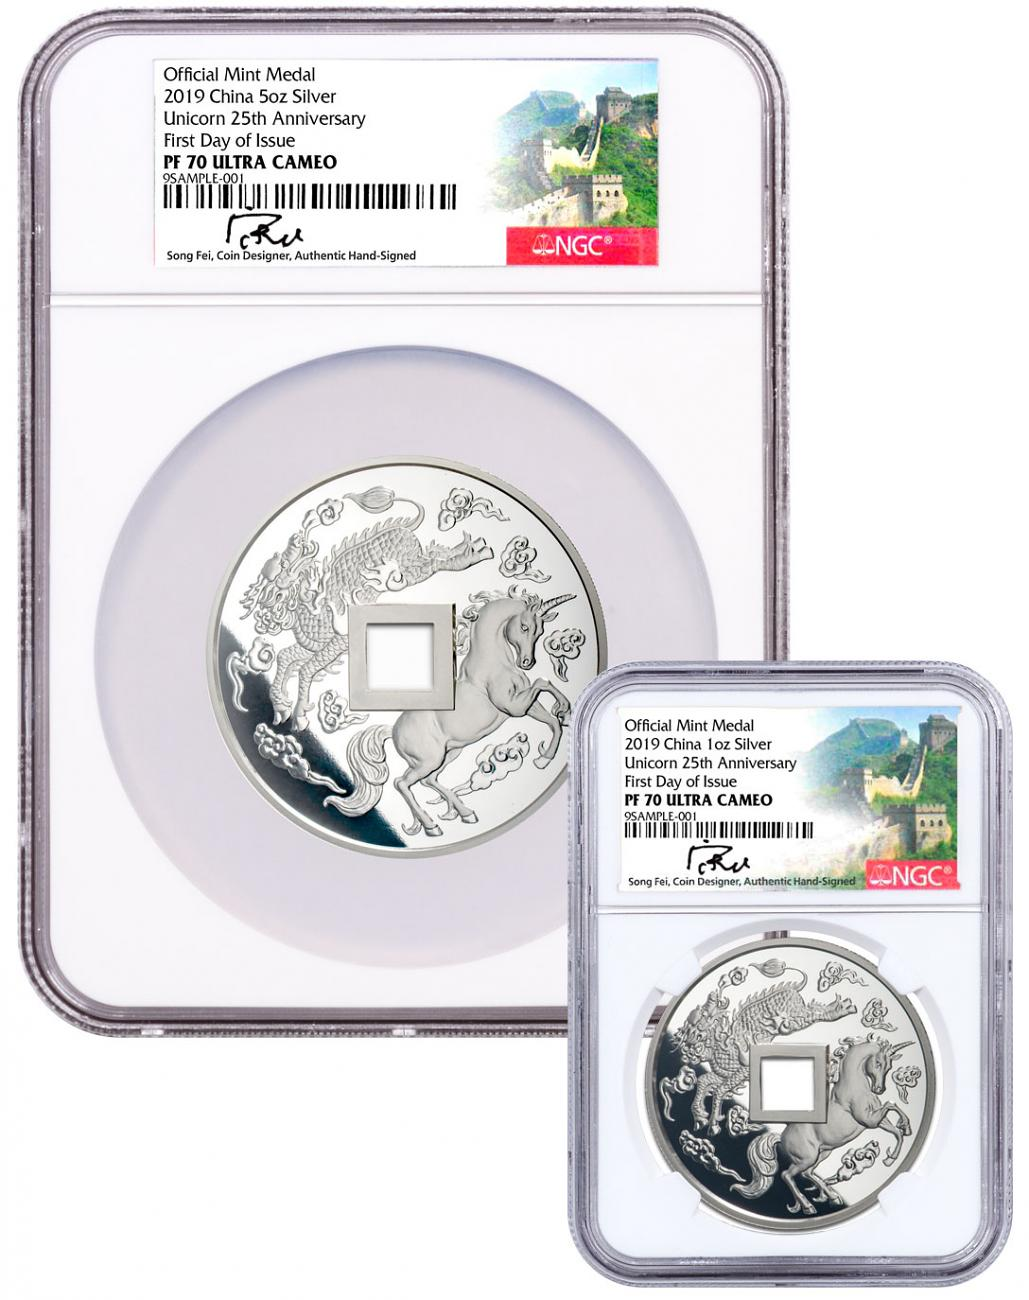 2-Piece Set - 2019 China Unicorn Vault Protector 25th Anniversary 1 oz + 5 oz Silver Proof Medal Scarce and Unique Coin Division NGC PF70 UC FDI Song Fei Signed Label